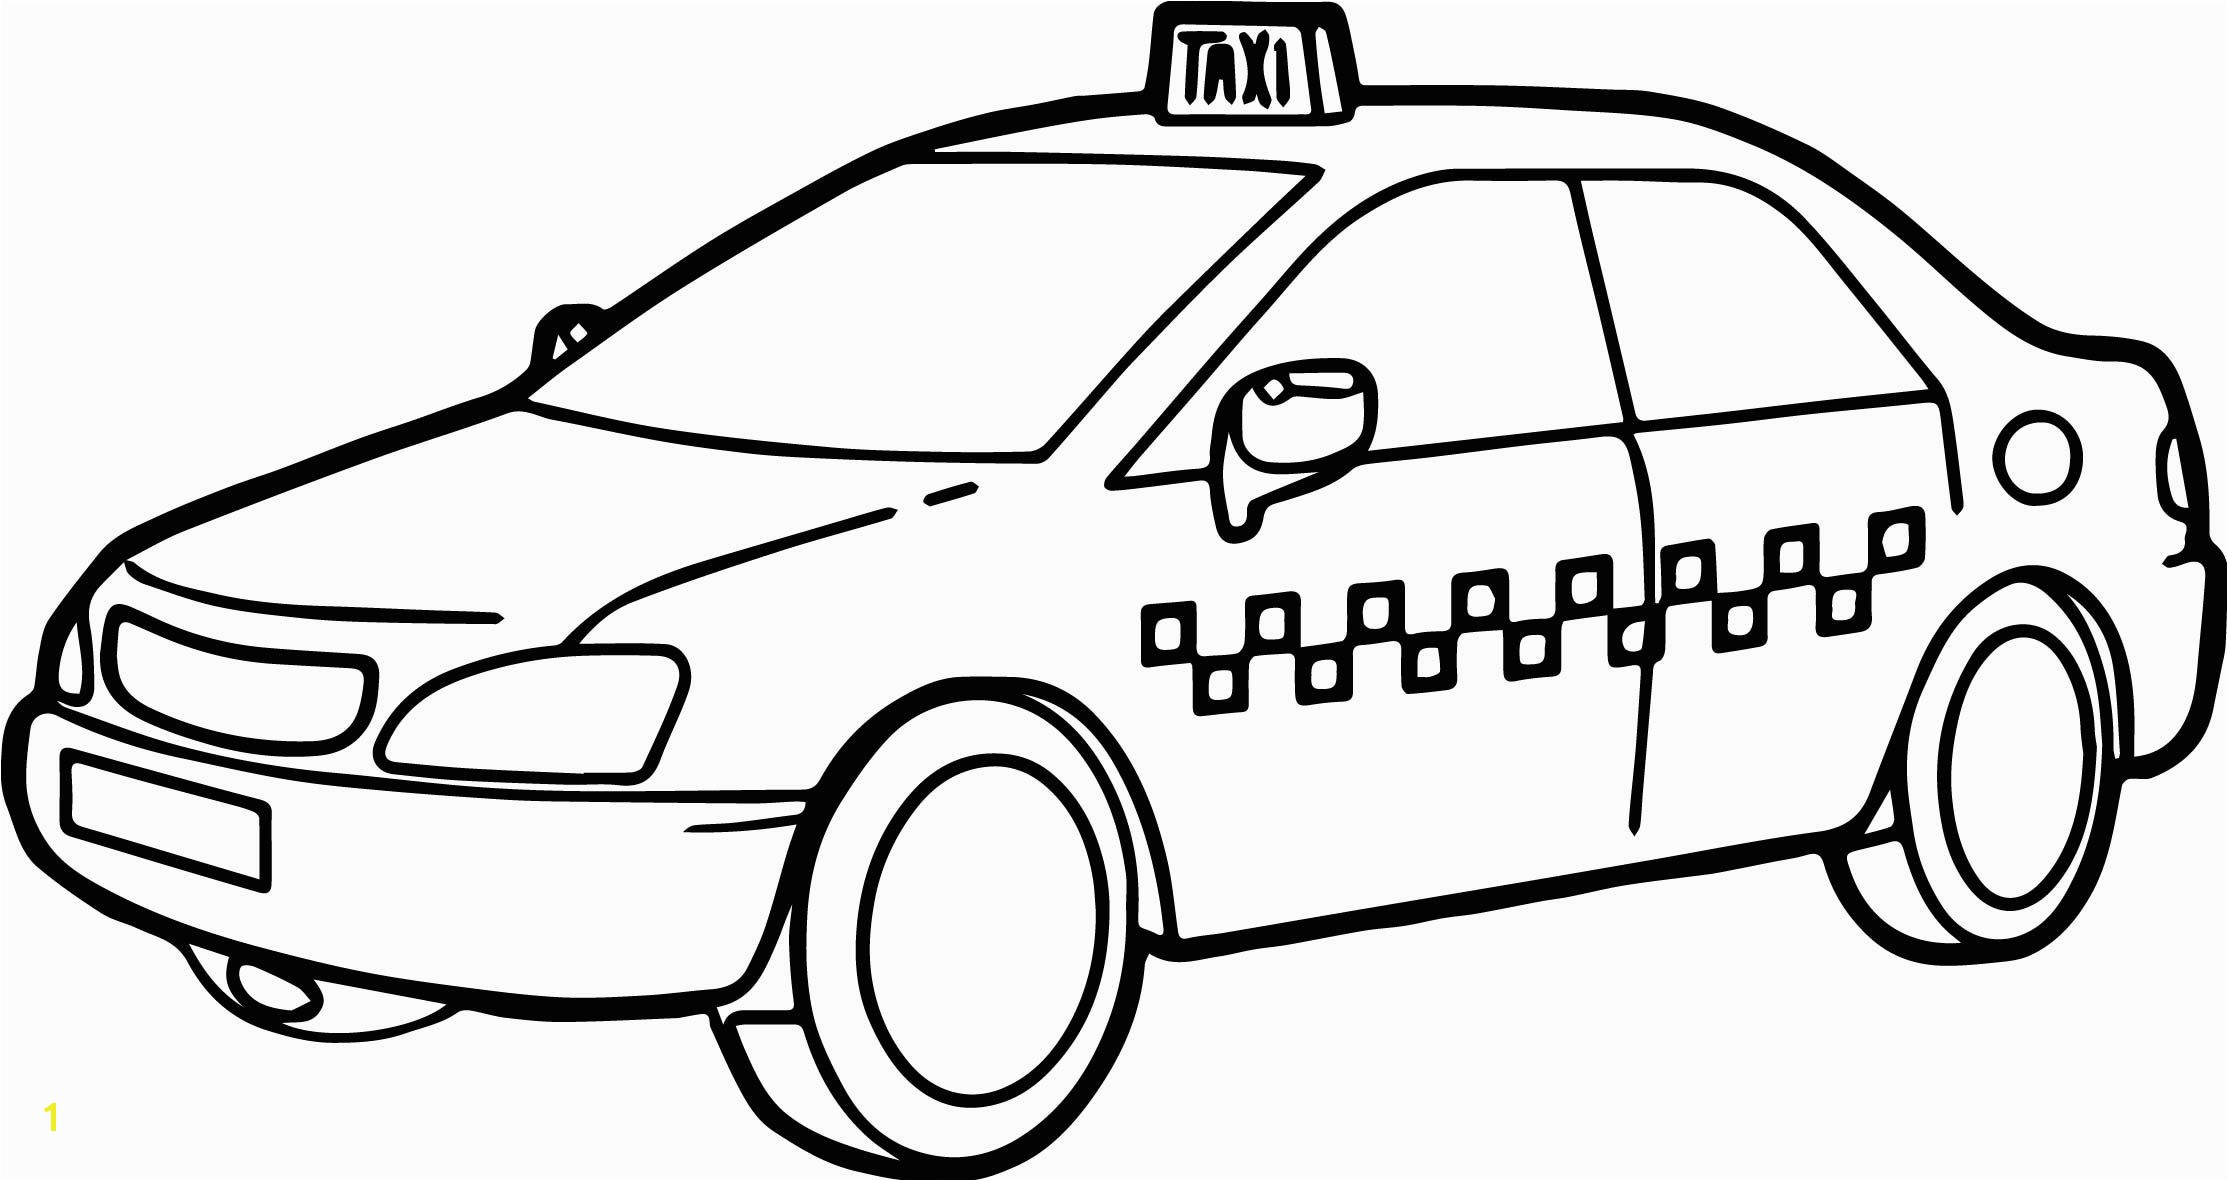 awesome Taxi Driver Car Fast Coloring Page